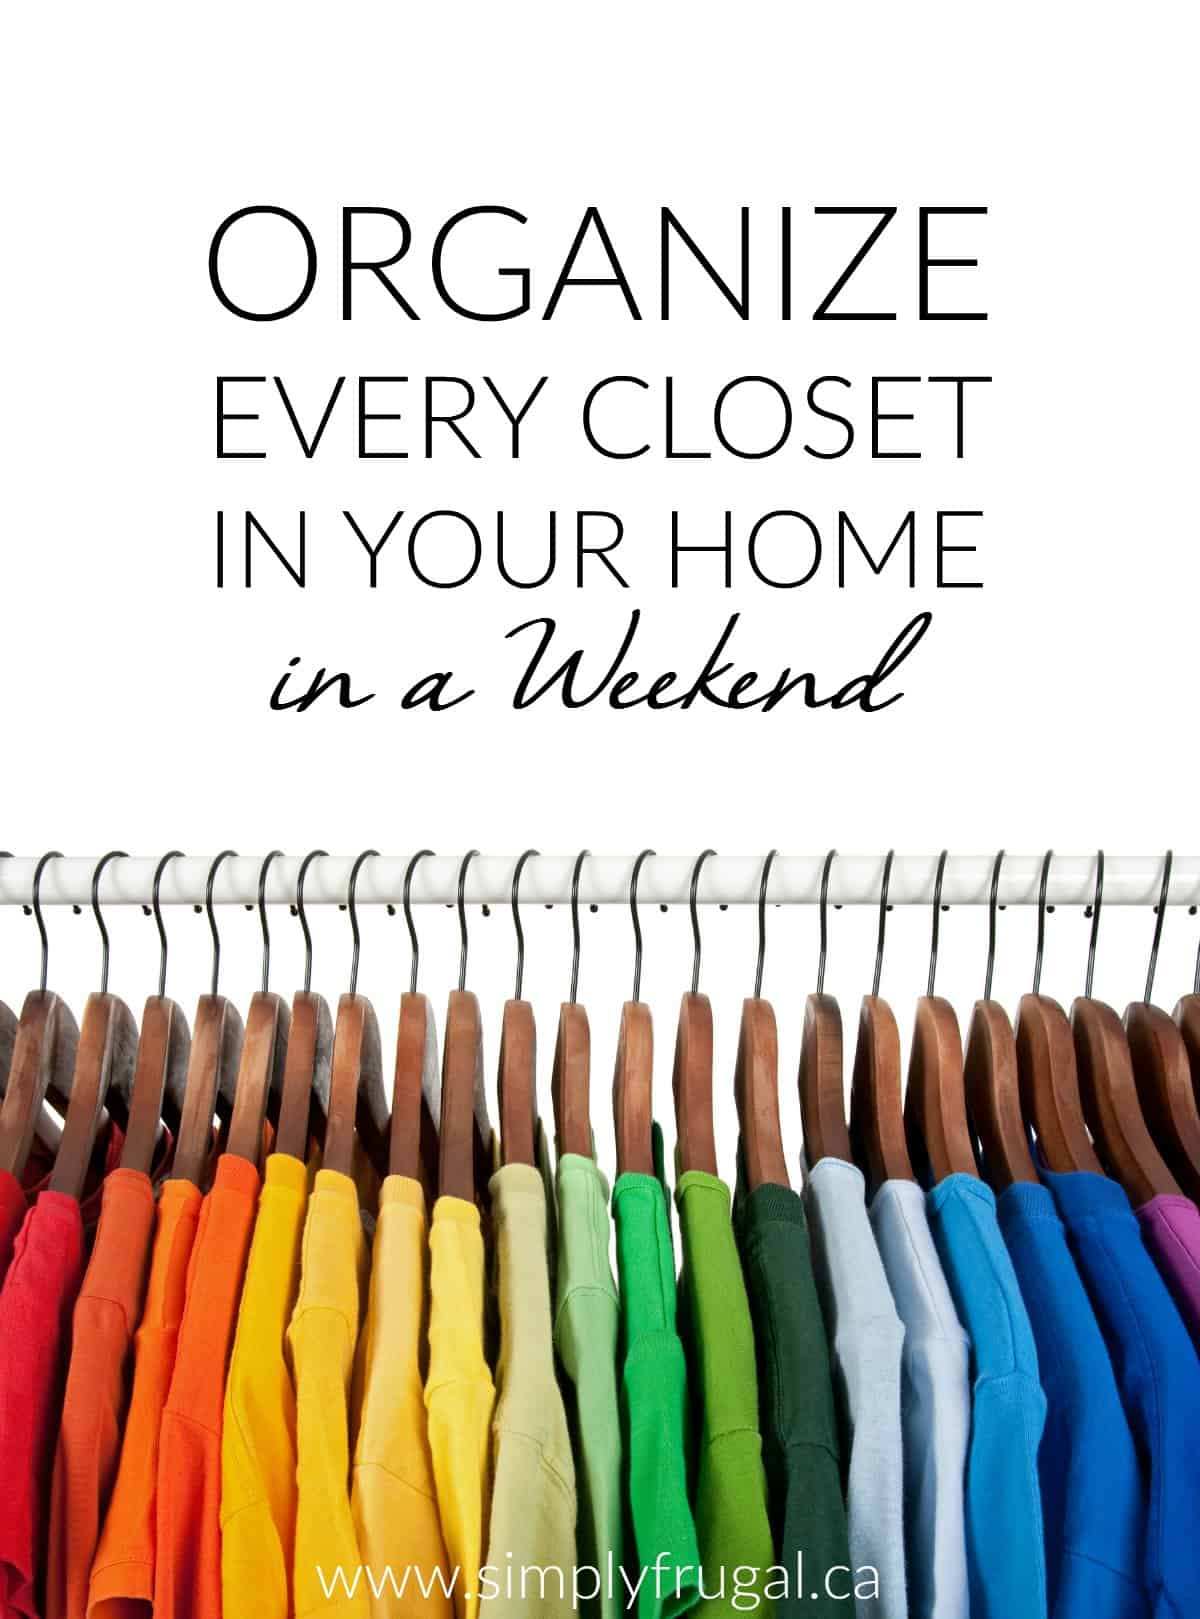 Organize every closet in your home in a weekend. Organization tips.